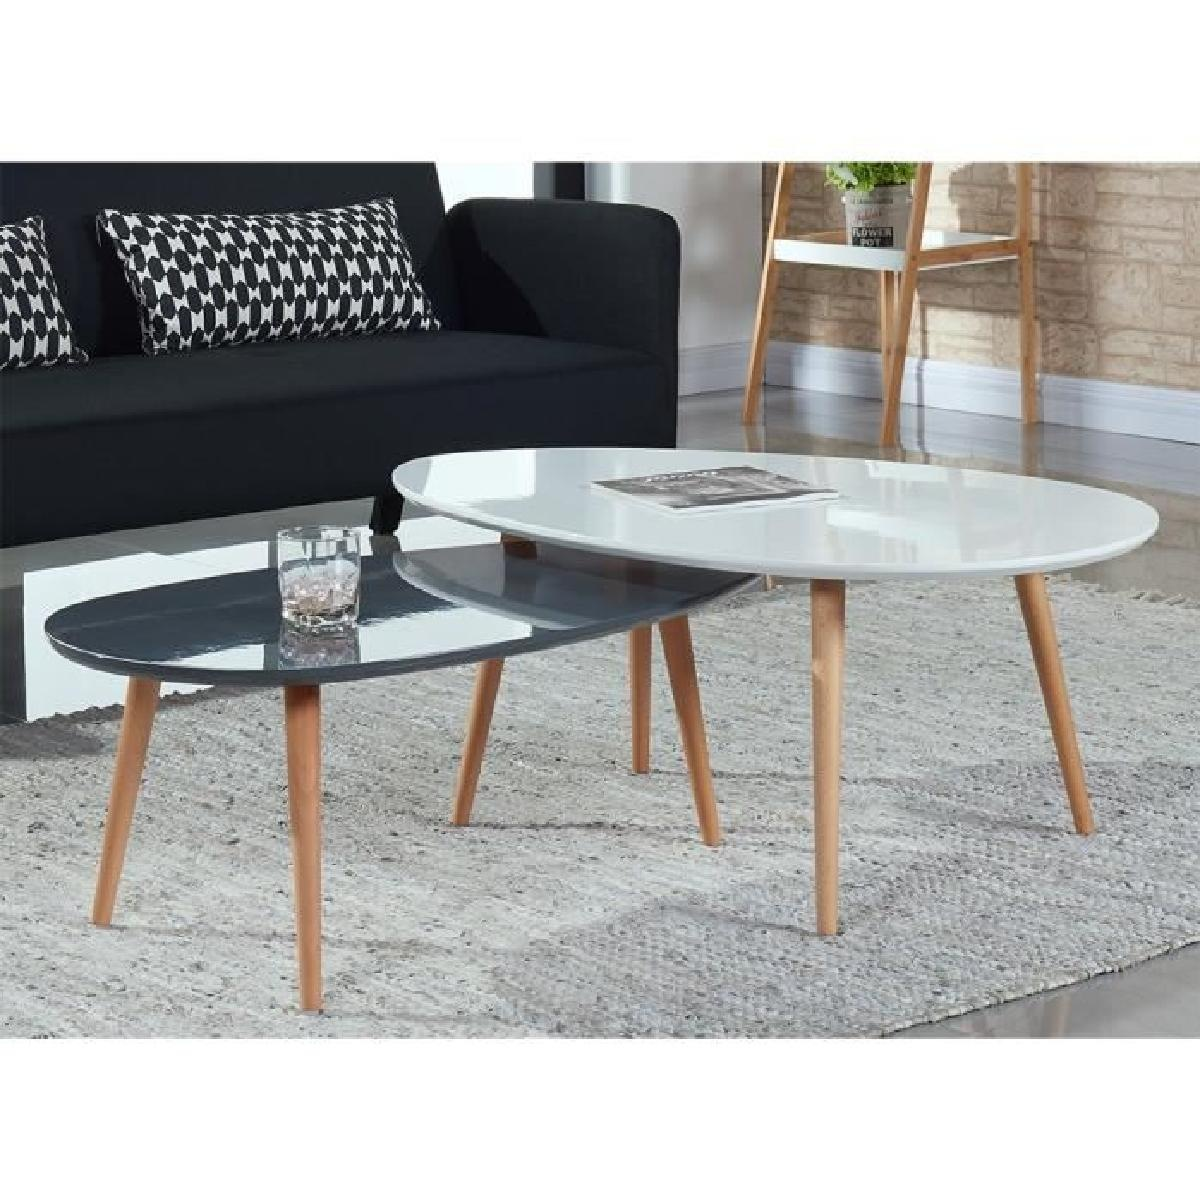 Table basse scandinave but